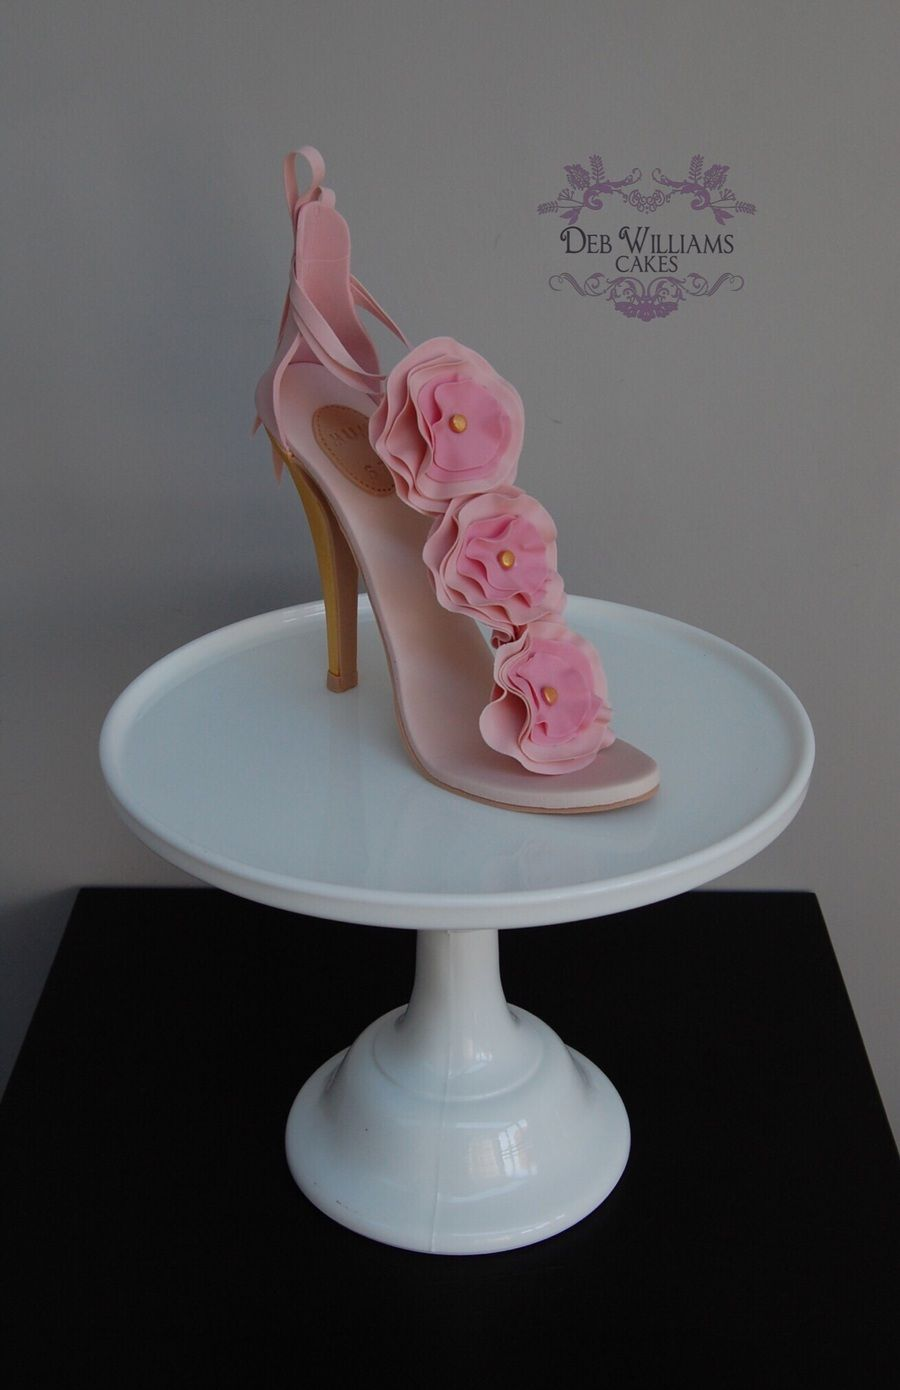 Deser williams pictures to pin on pinterest - Find This Pin And More On Fondant Stiletto